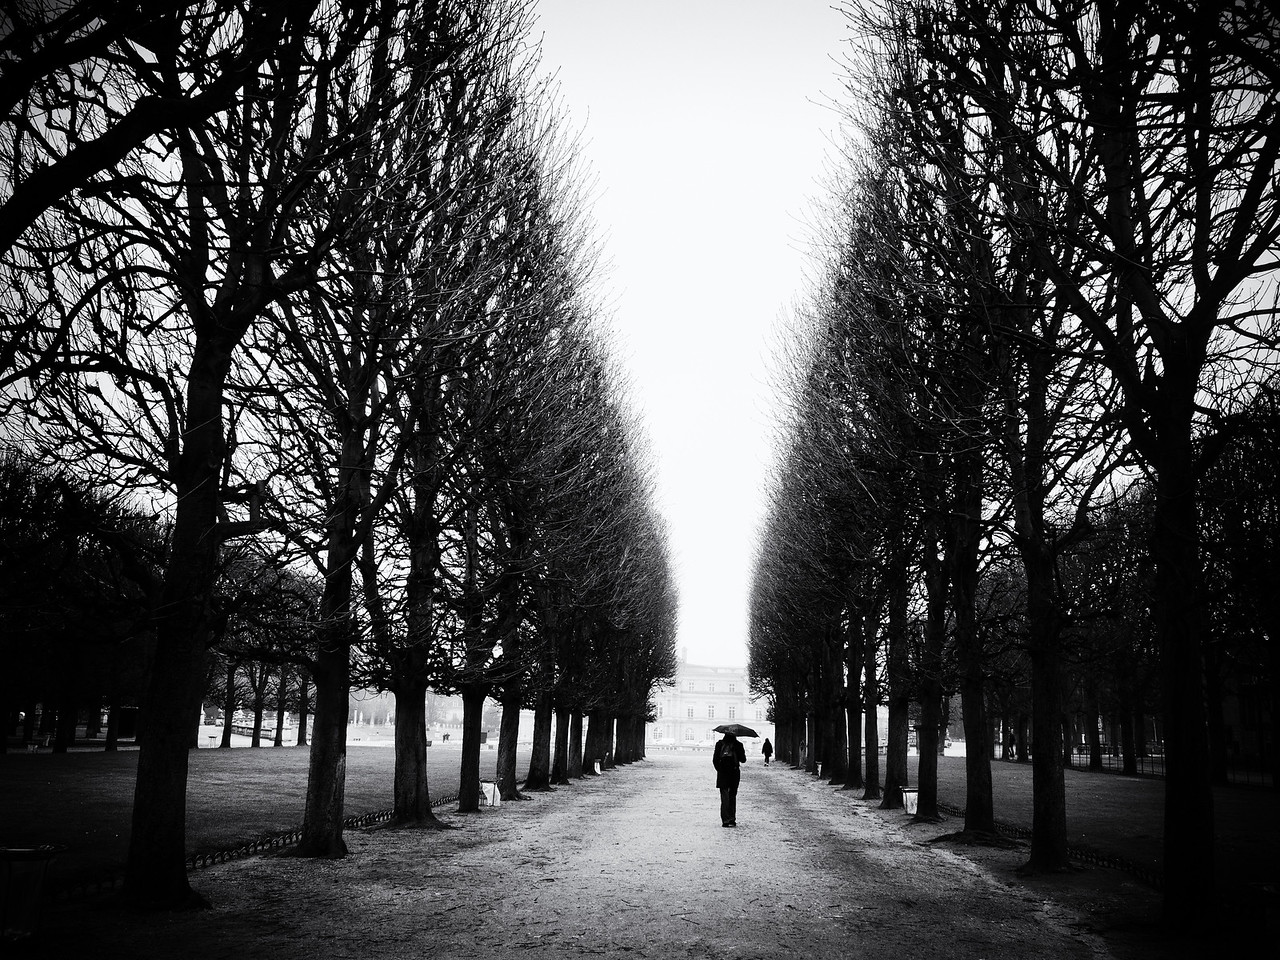 In Jardin de Luxembourg on another drizzly day.